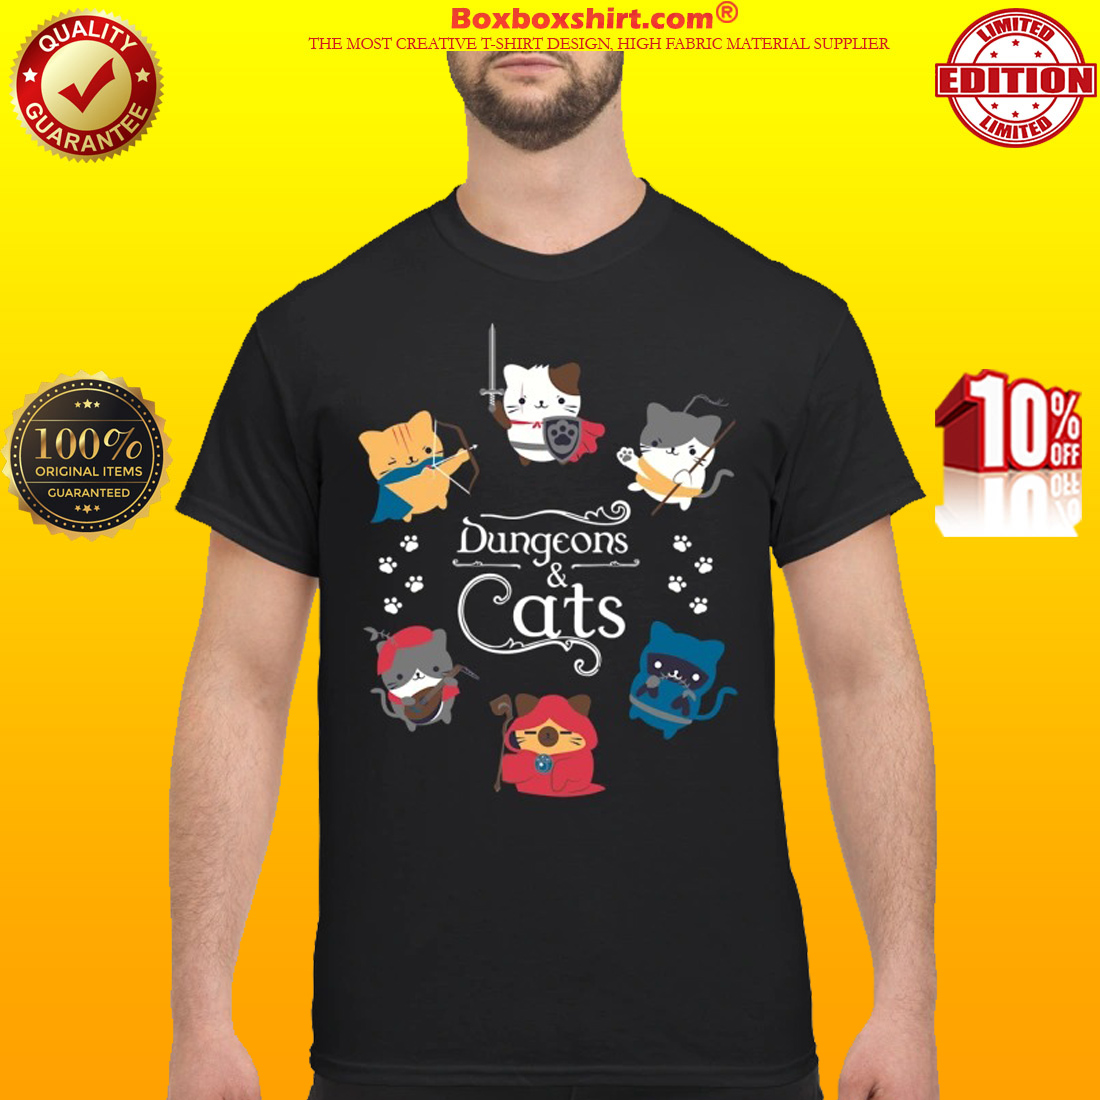 Dungeons and cats classic shirt